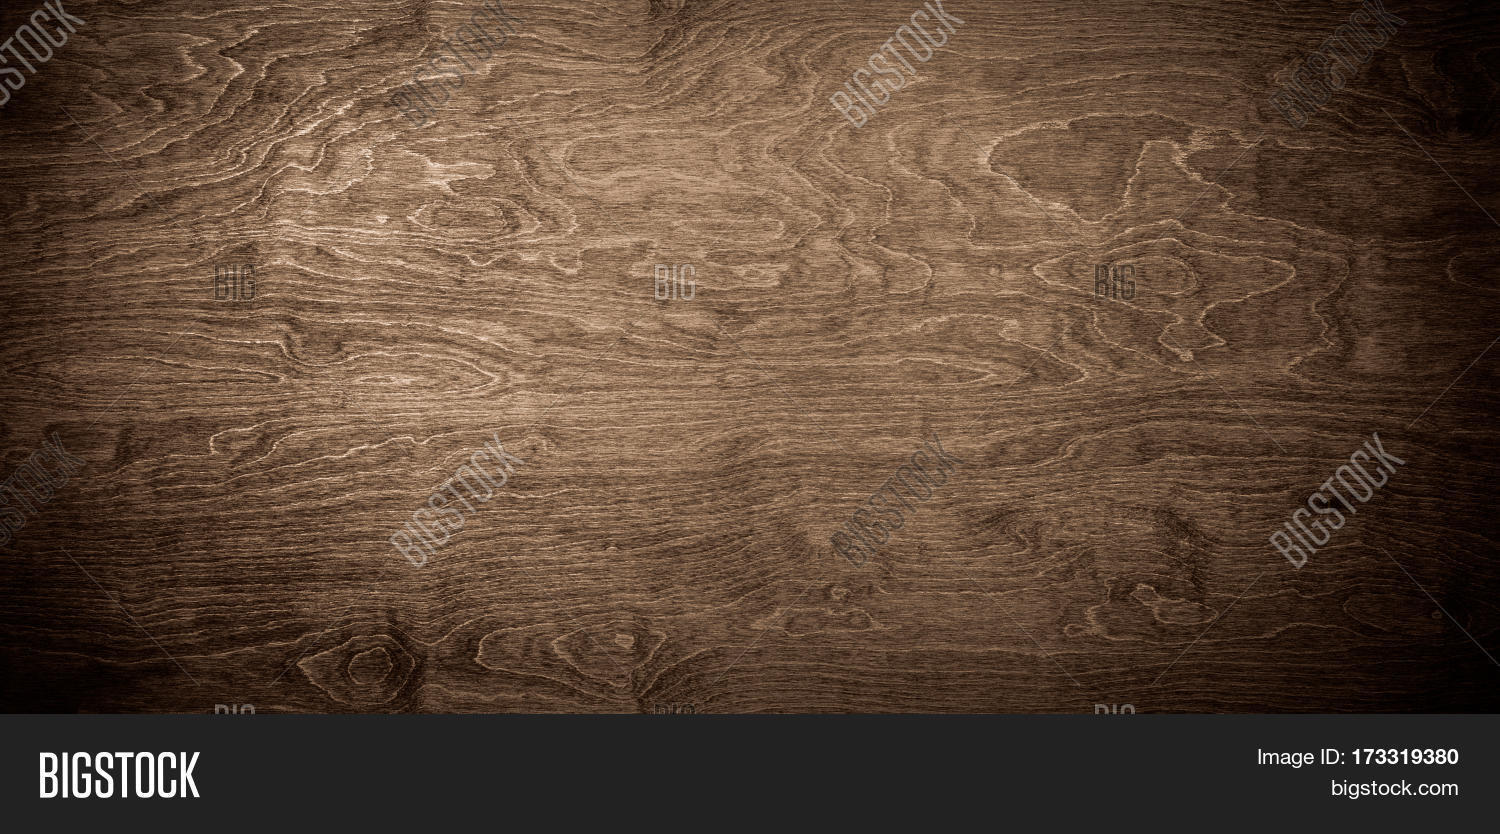 Background image table - Old Wood Texture Background Surface Wood Table Surface Top View Vintage Wood Texture Background